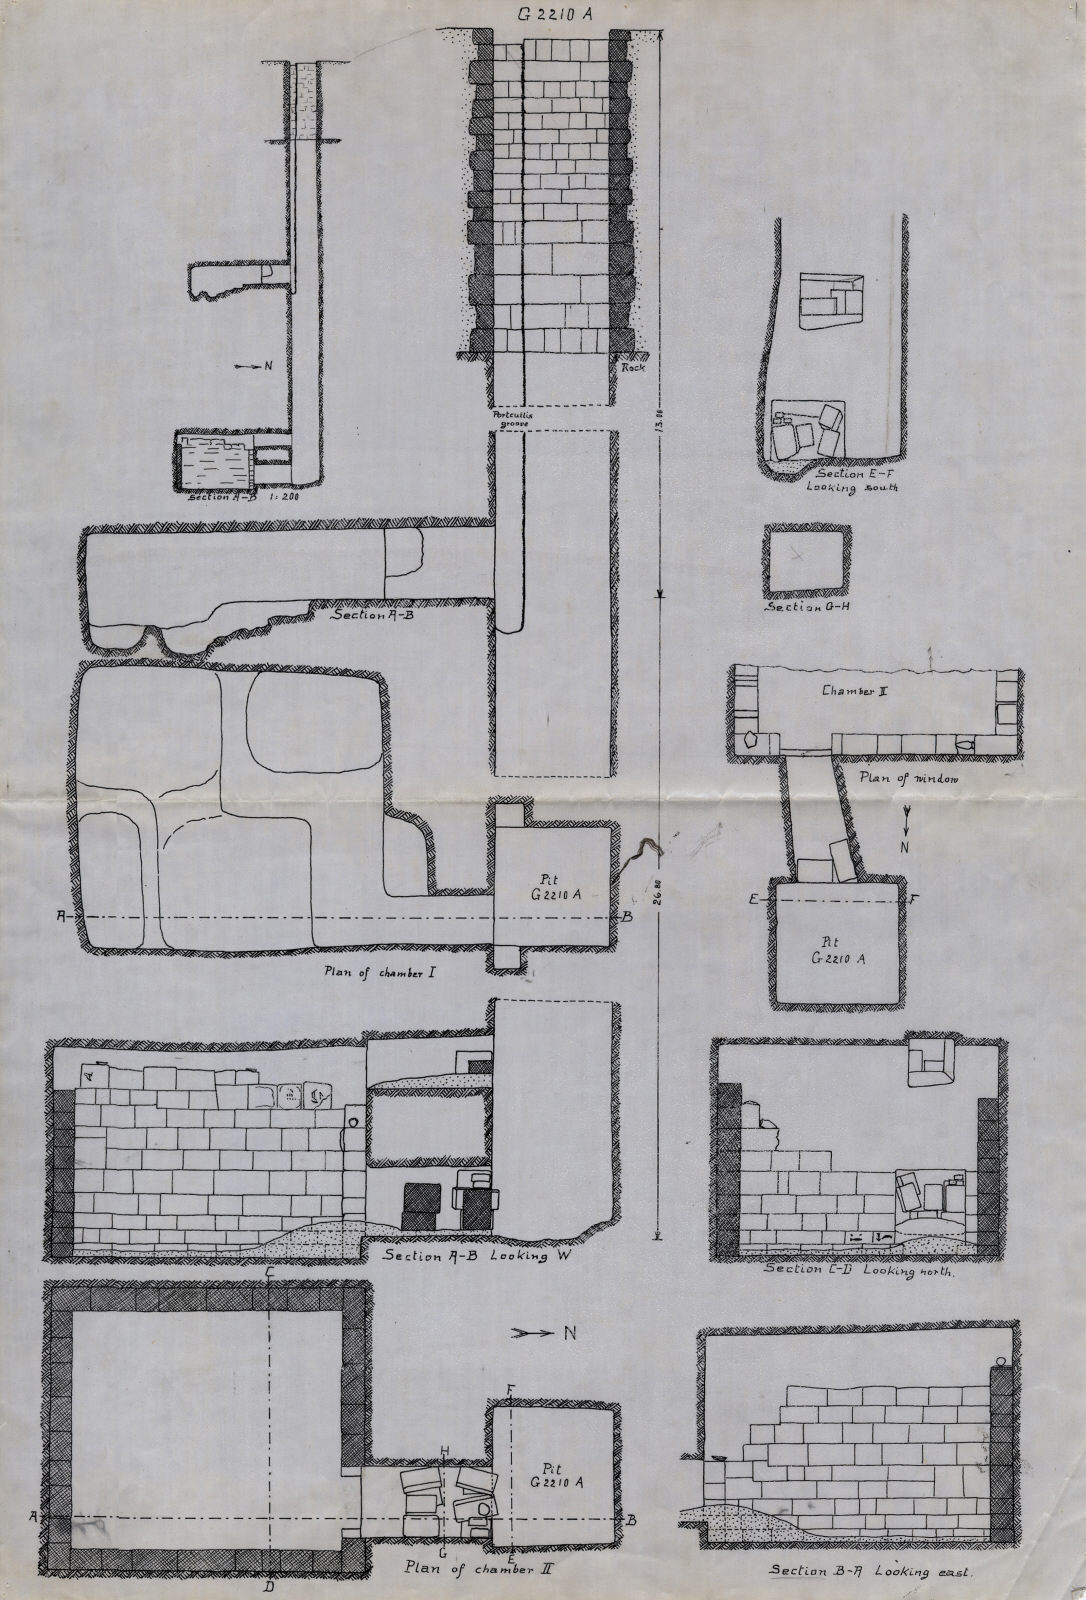 Maps and plans: G 2210, Shaft A